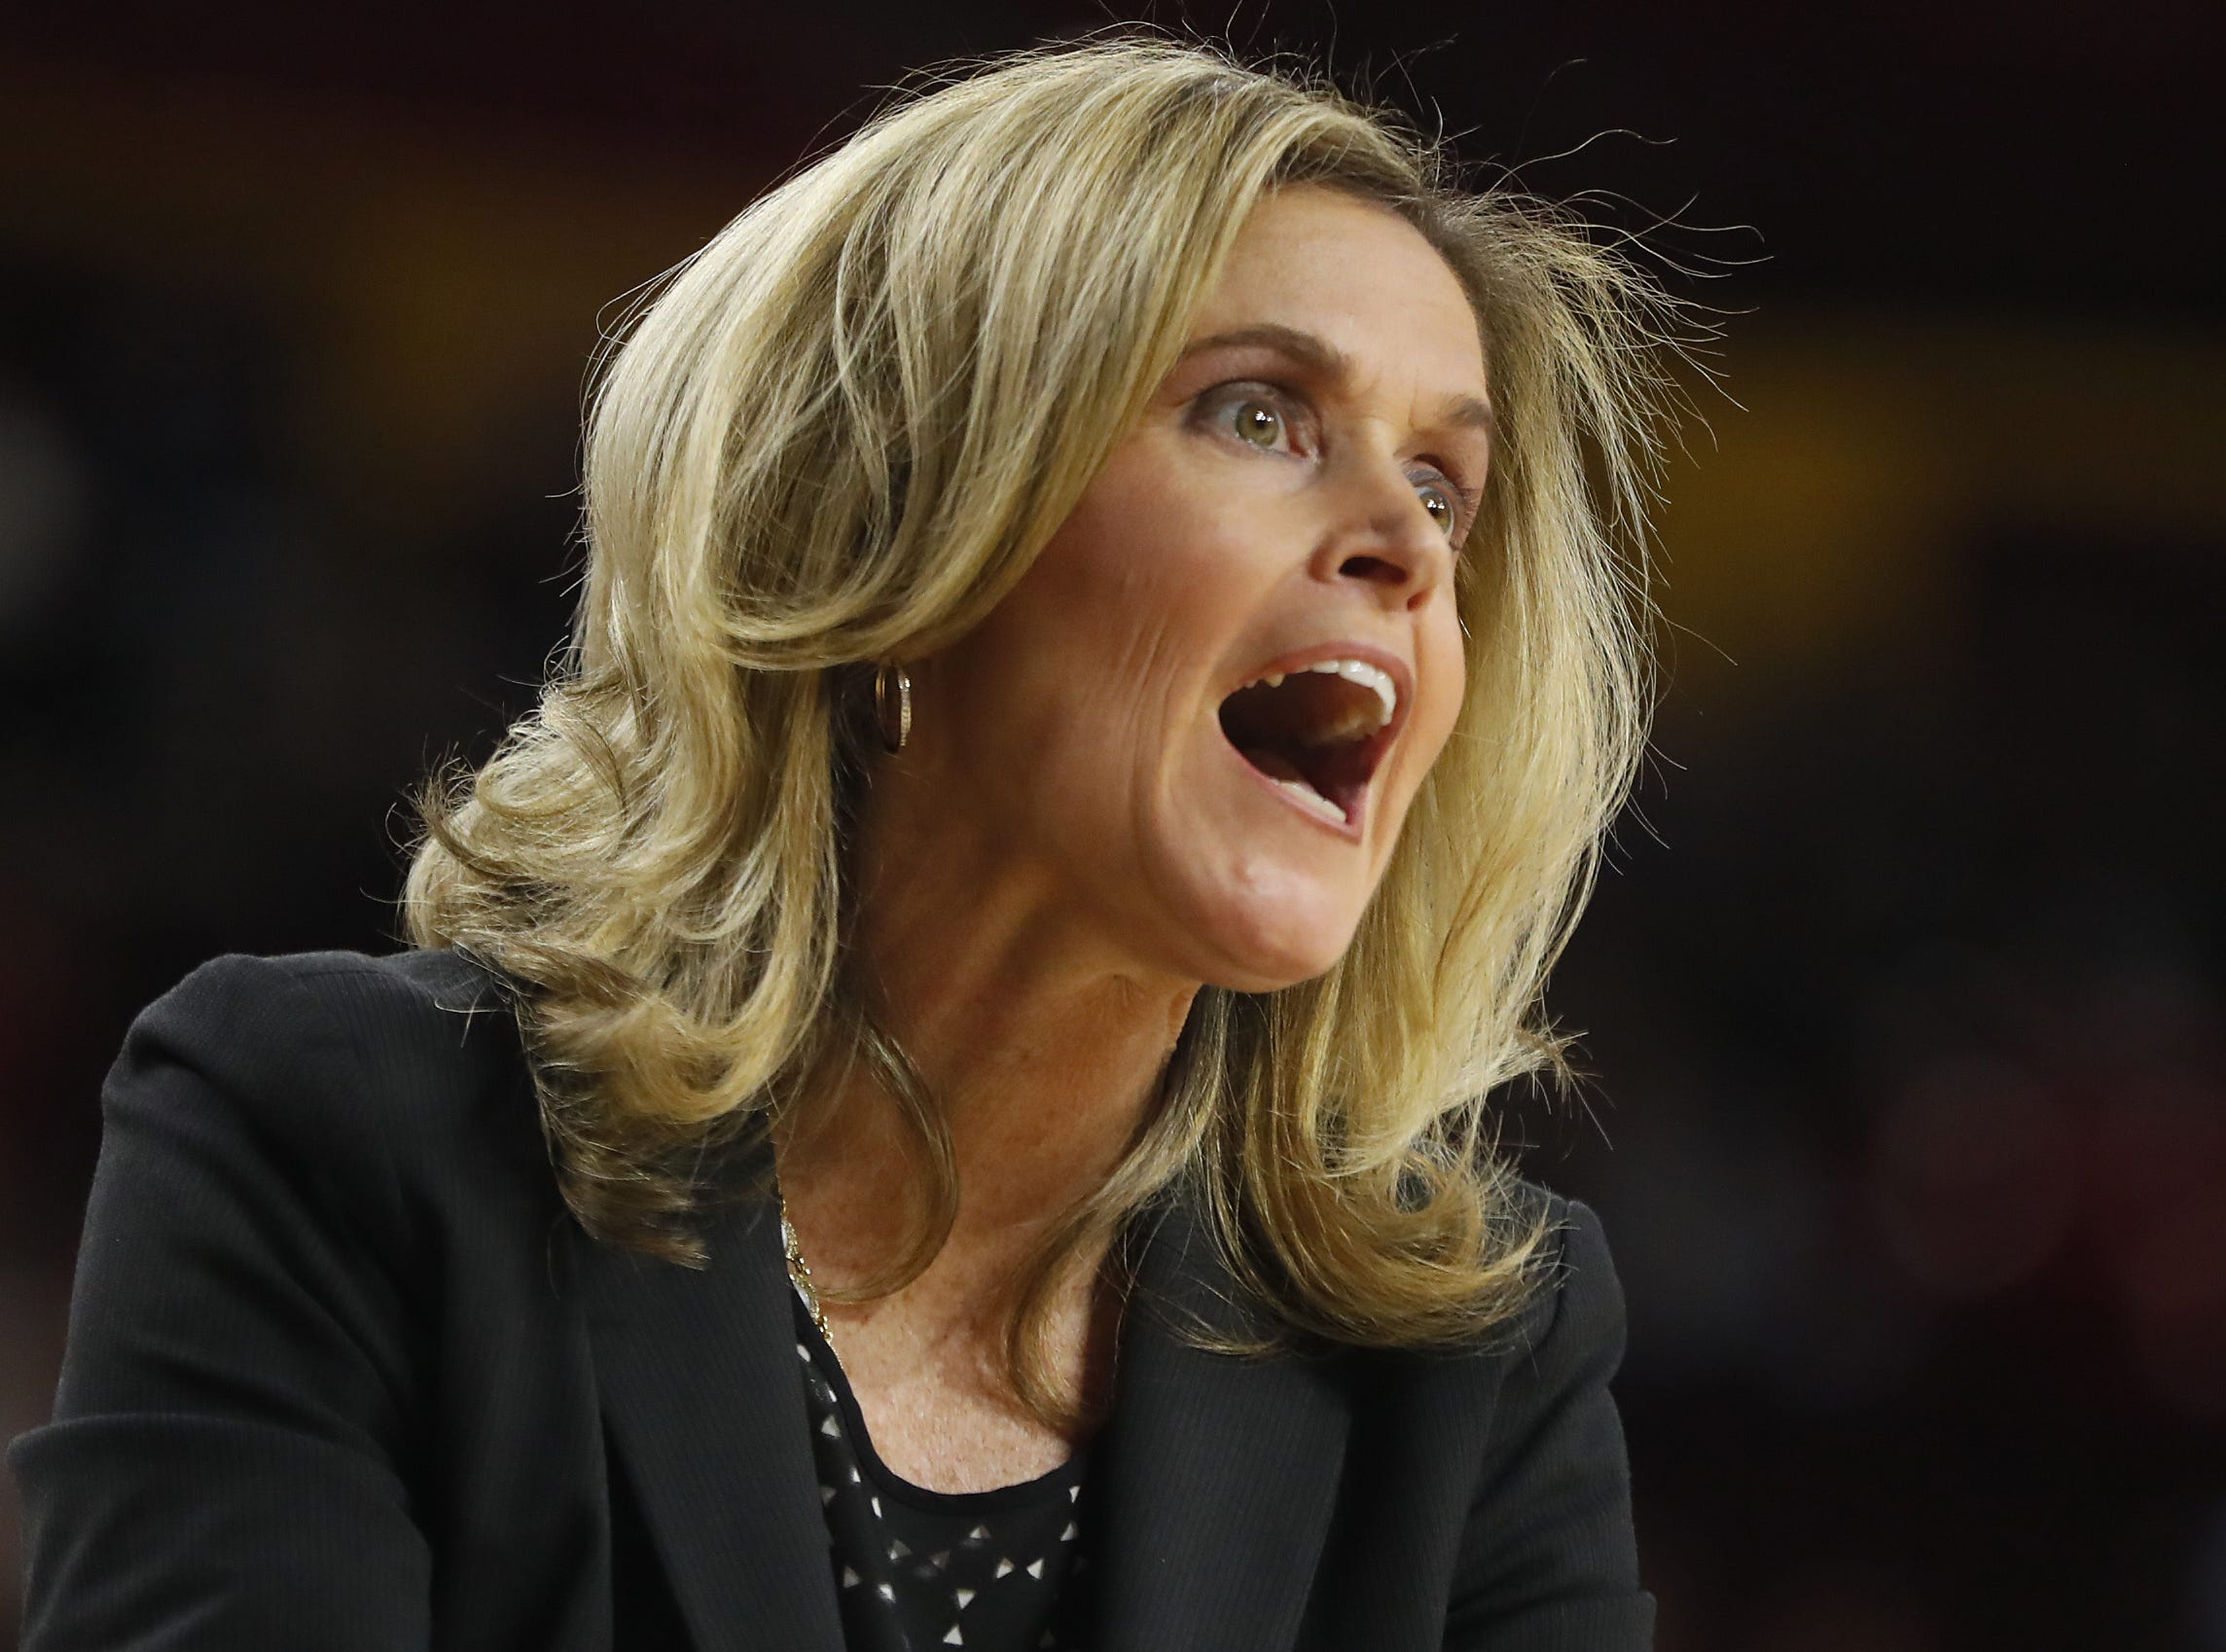 ASU's head coach Charli Turner Thorne yells to an official during the second half against Arizona at Wells Fargo Arena in Tempe, Ariz. on February 1, 2019.